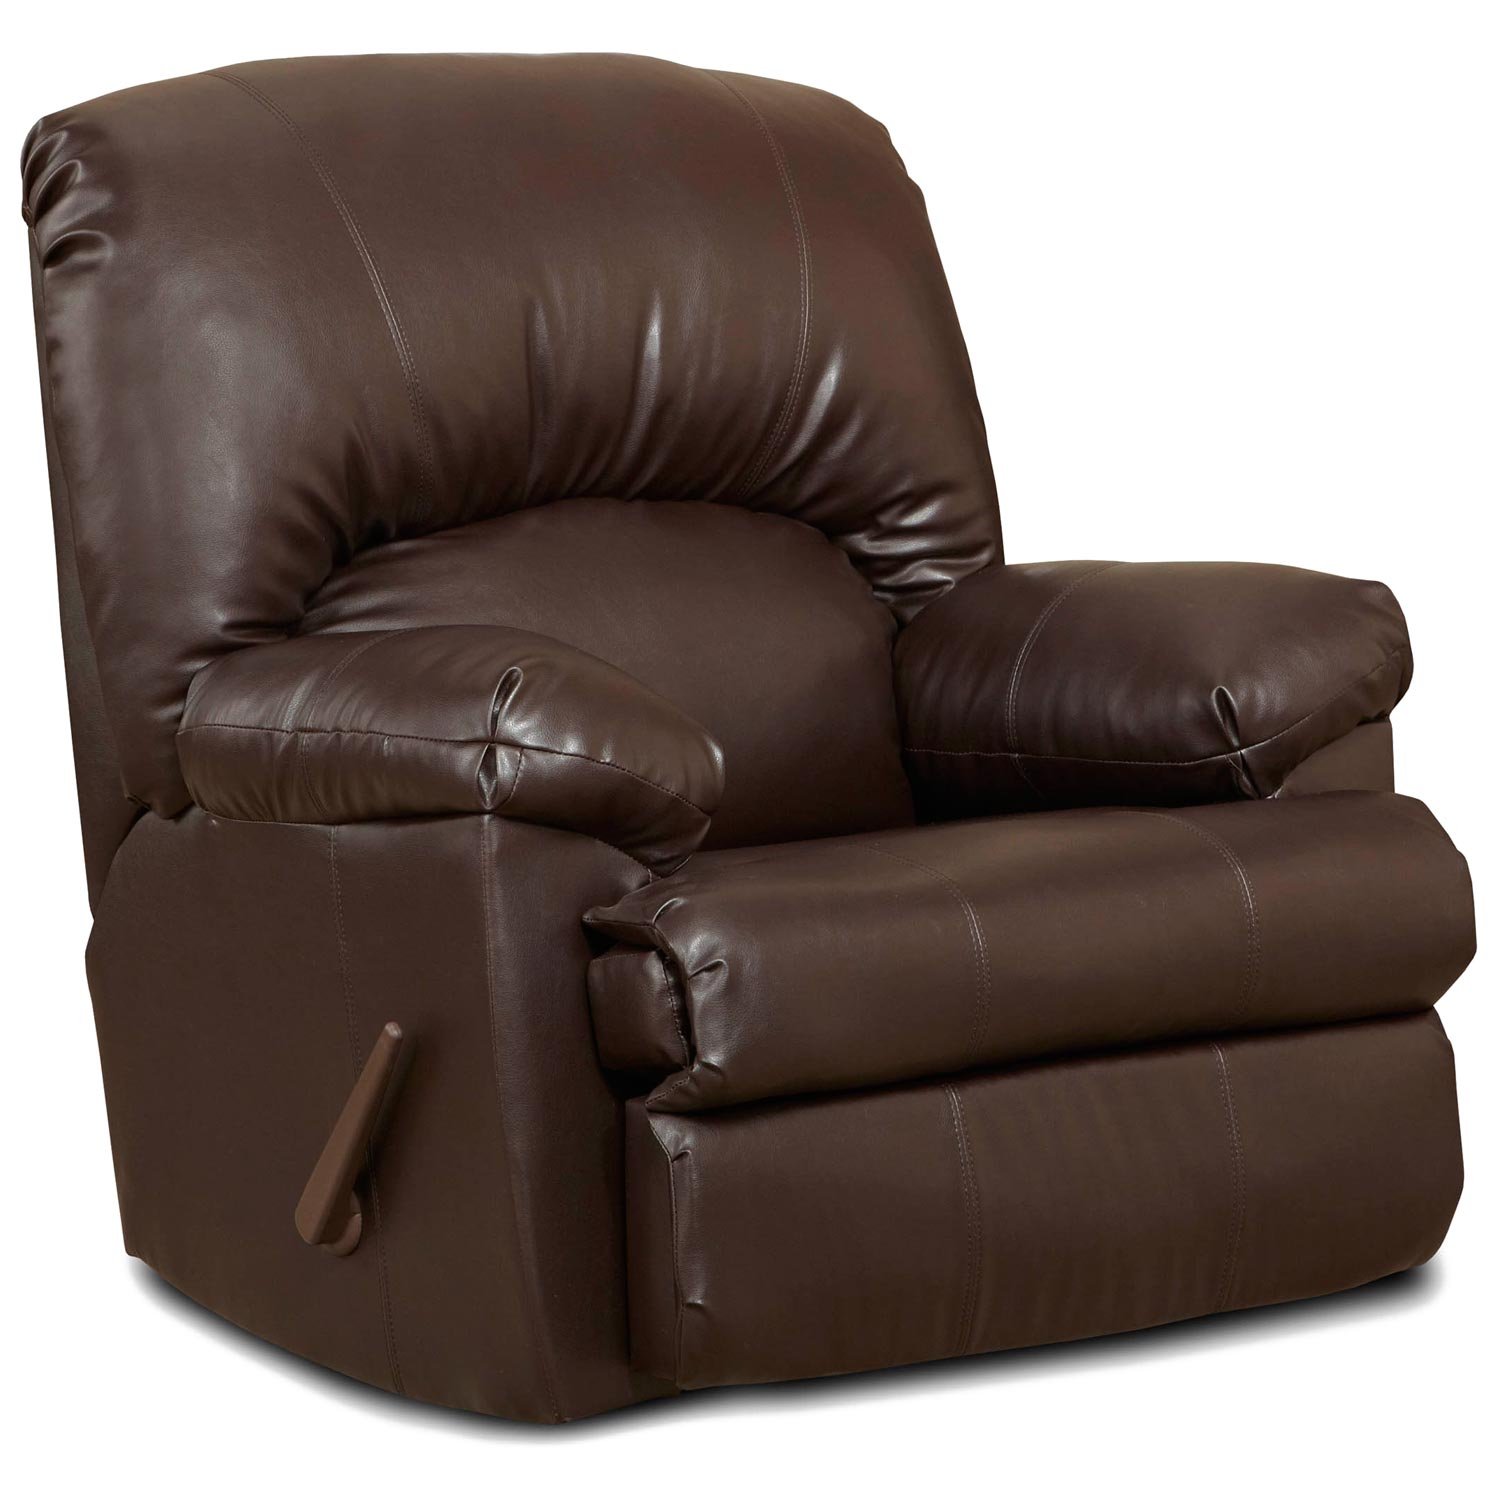 brown leather rocking chair small plastic charles rocker recliner dcg stores